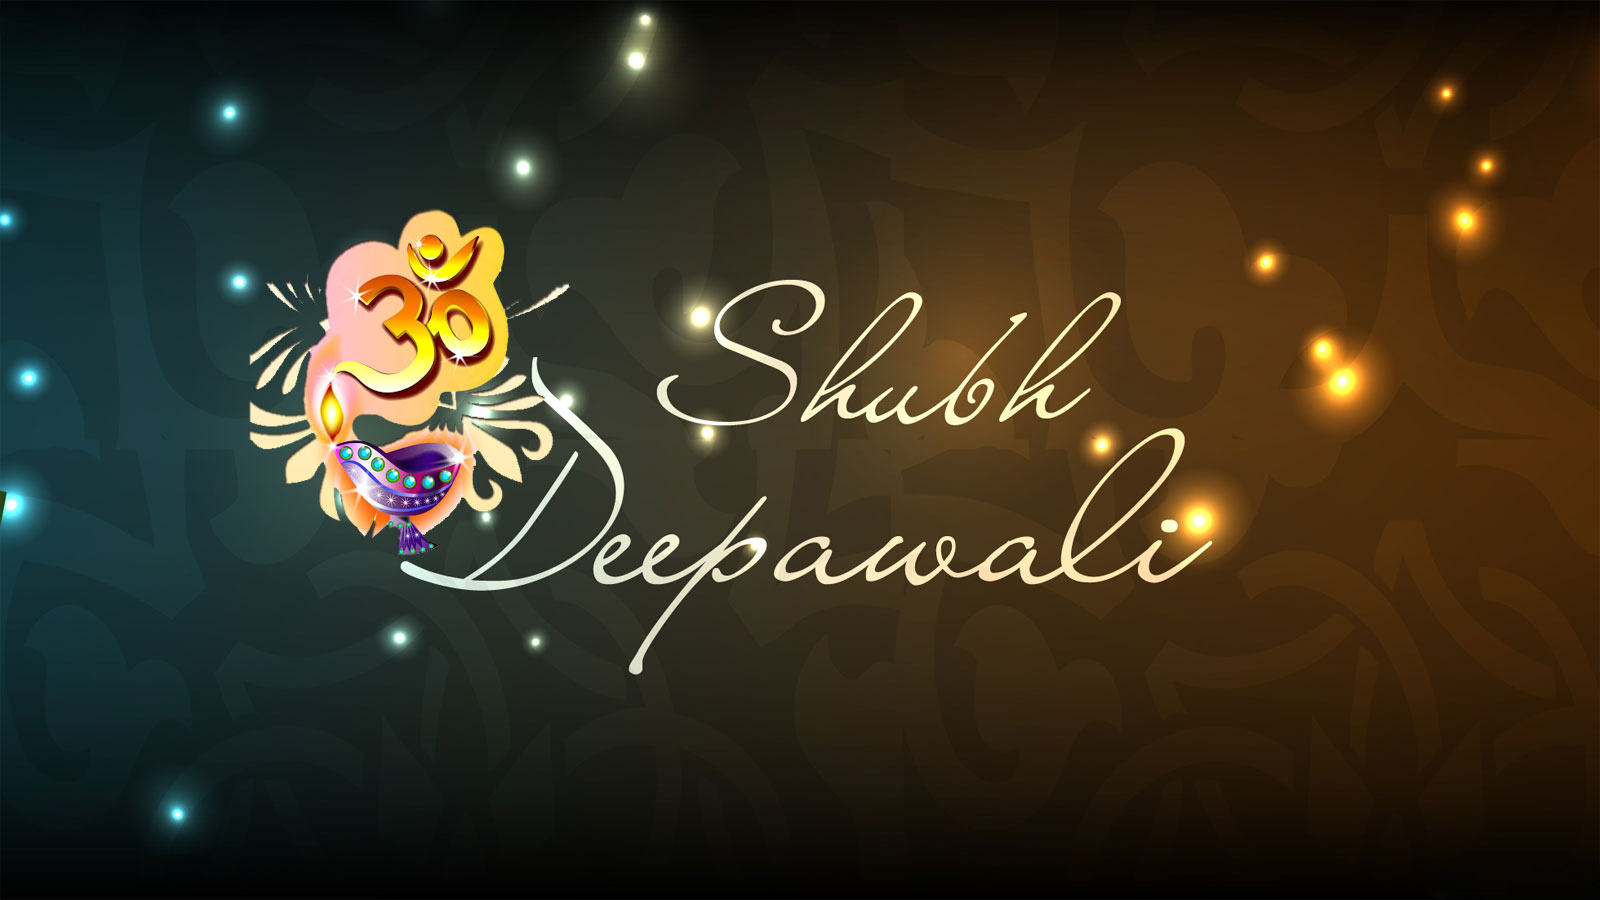 Diwali images of the festival wallpapers free download m4hsunfo